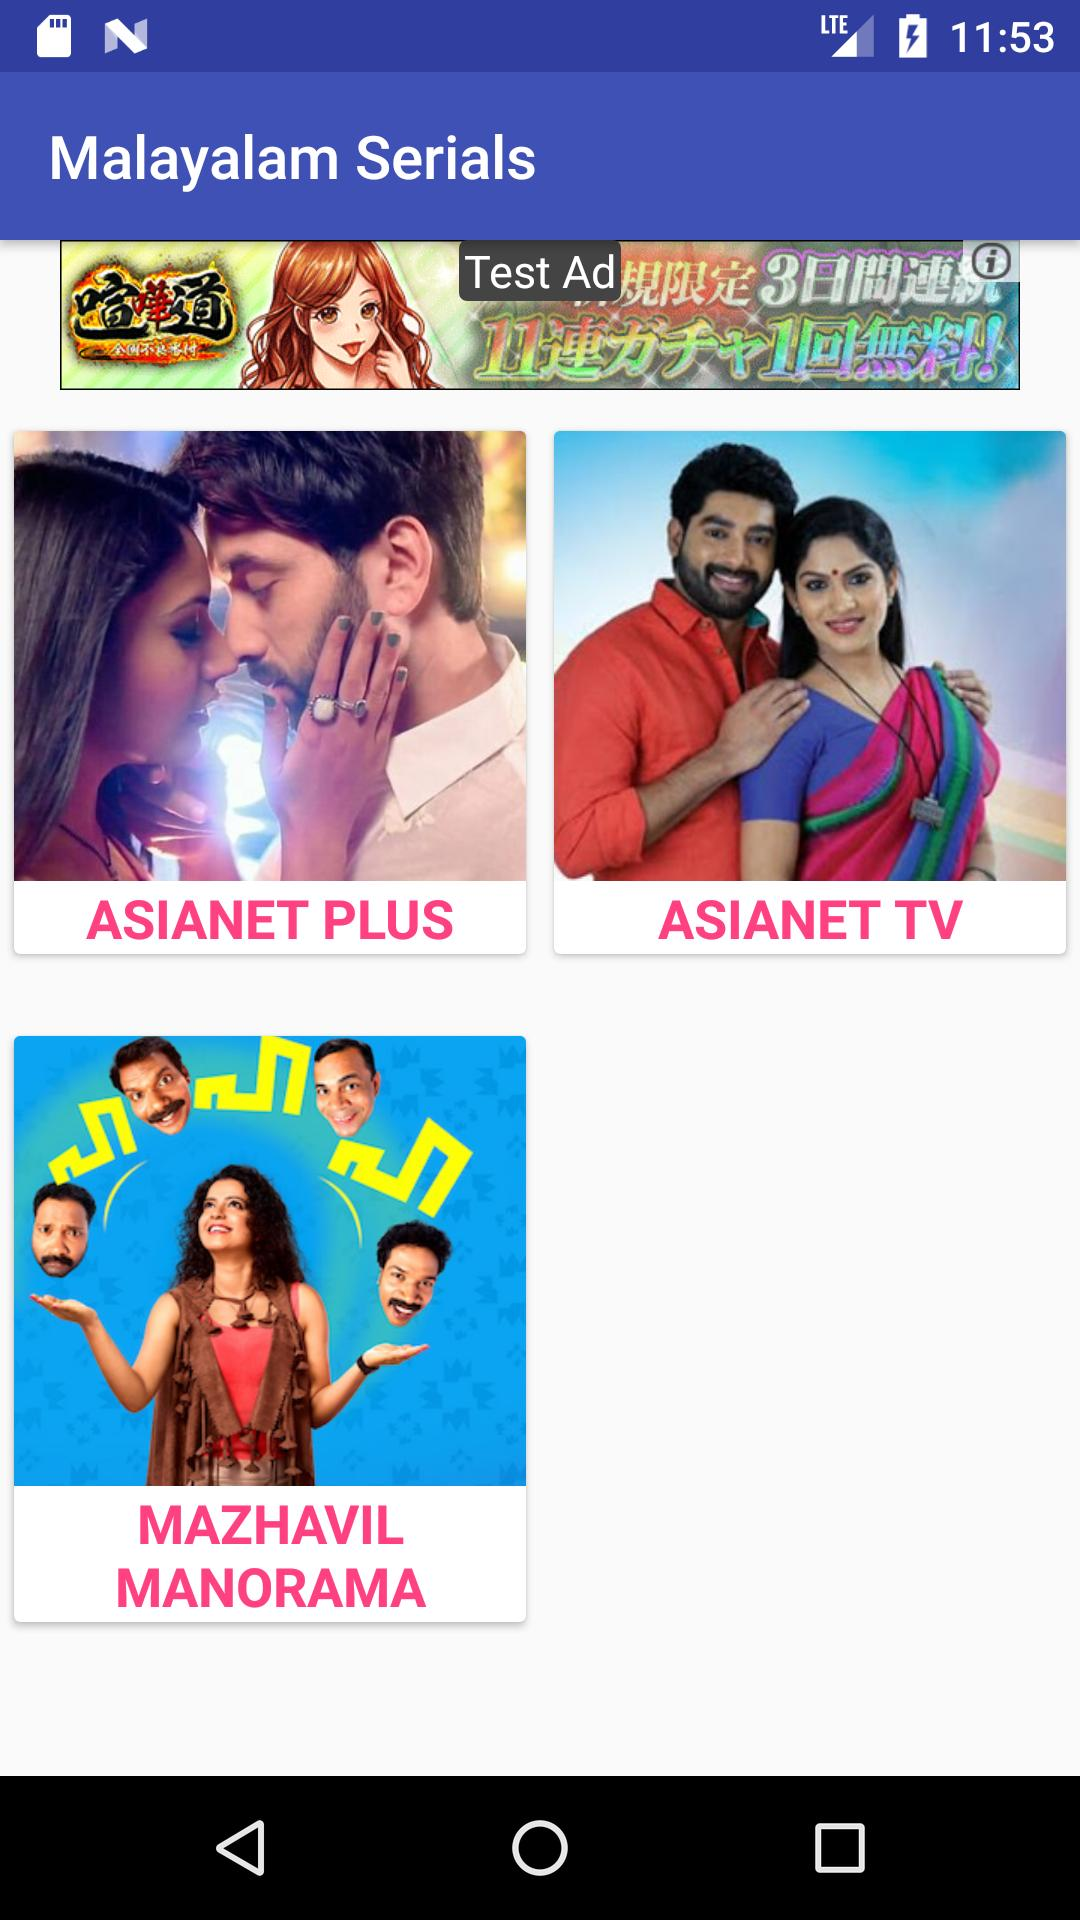 Malayalam TV Serials for Android - APK Download